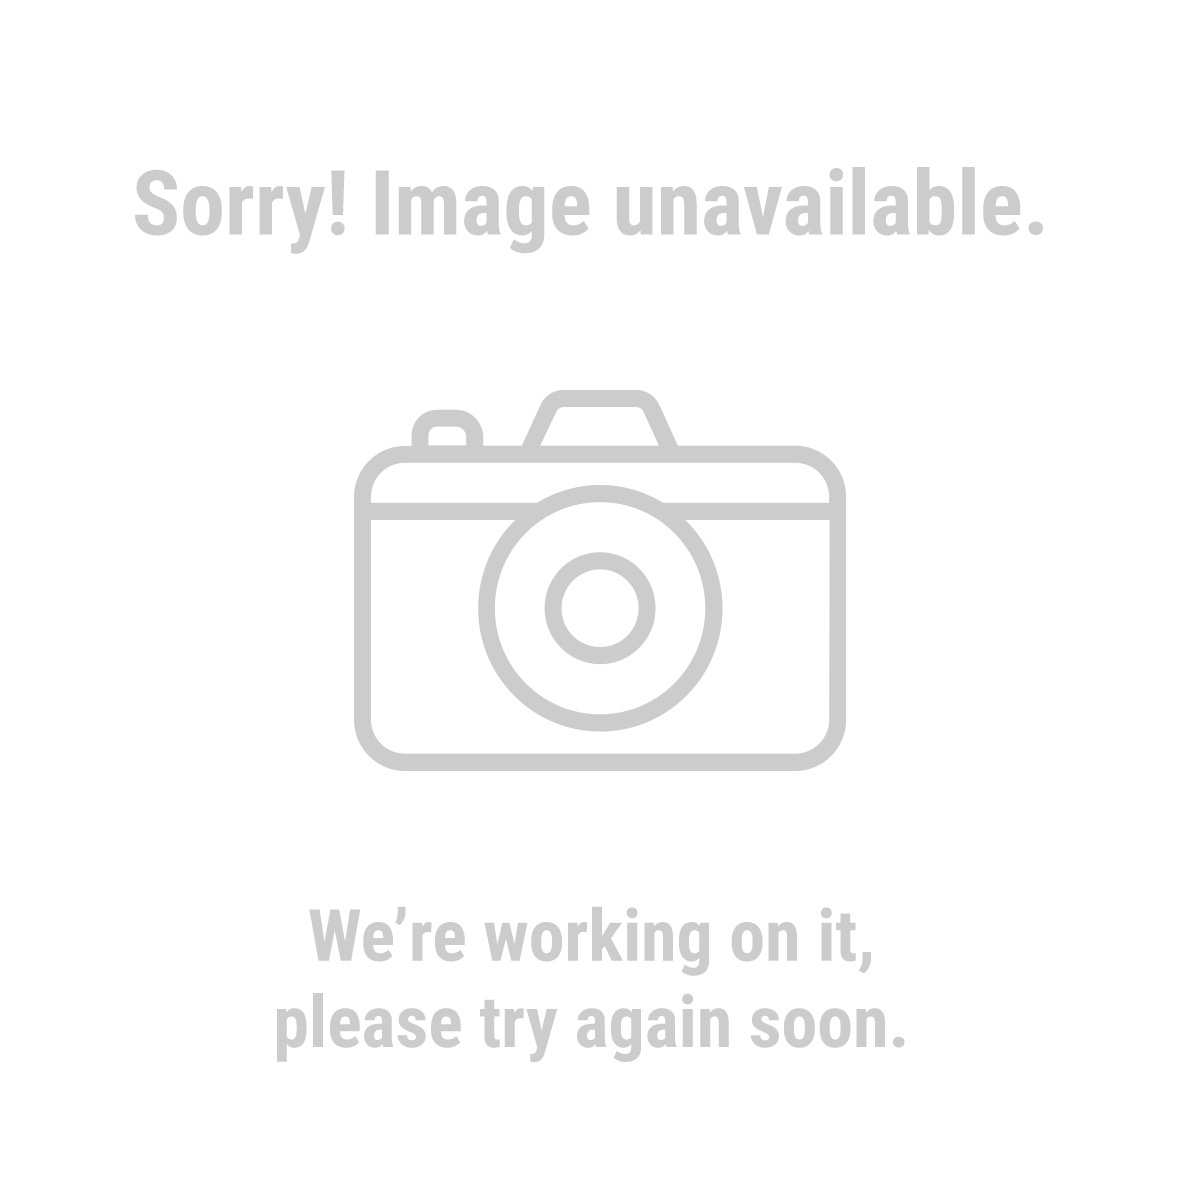 67488 10 Piece Rare Earth Magnets